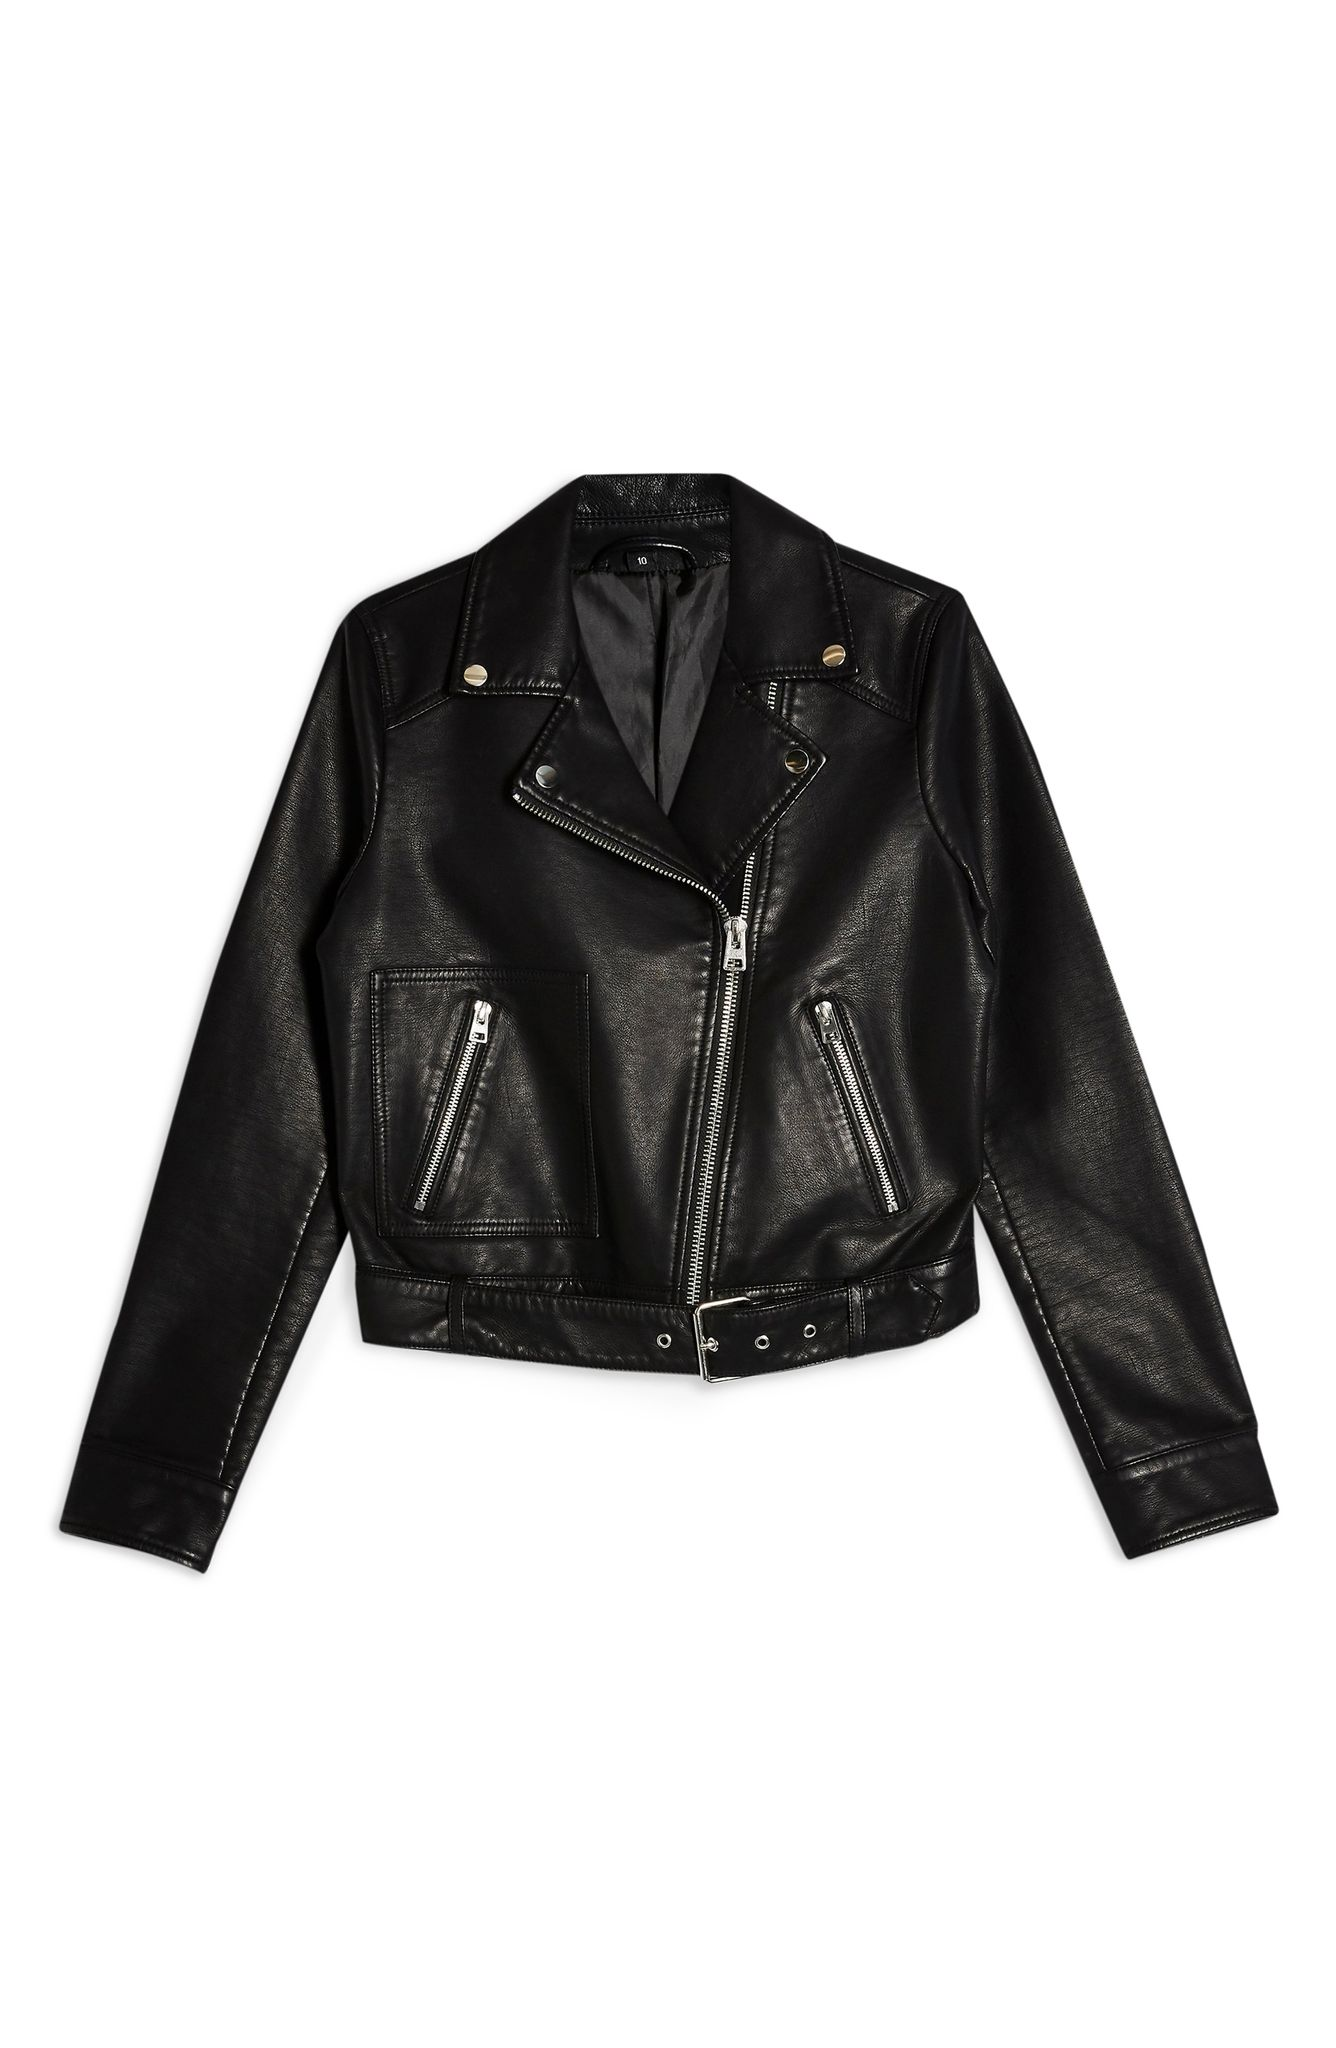 Topshop Kota Jacket (normally $95): NOW $62.90 (Image: Nordstrom){ }